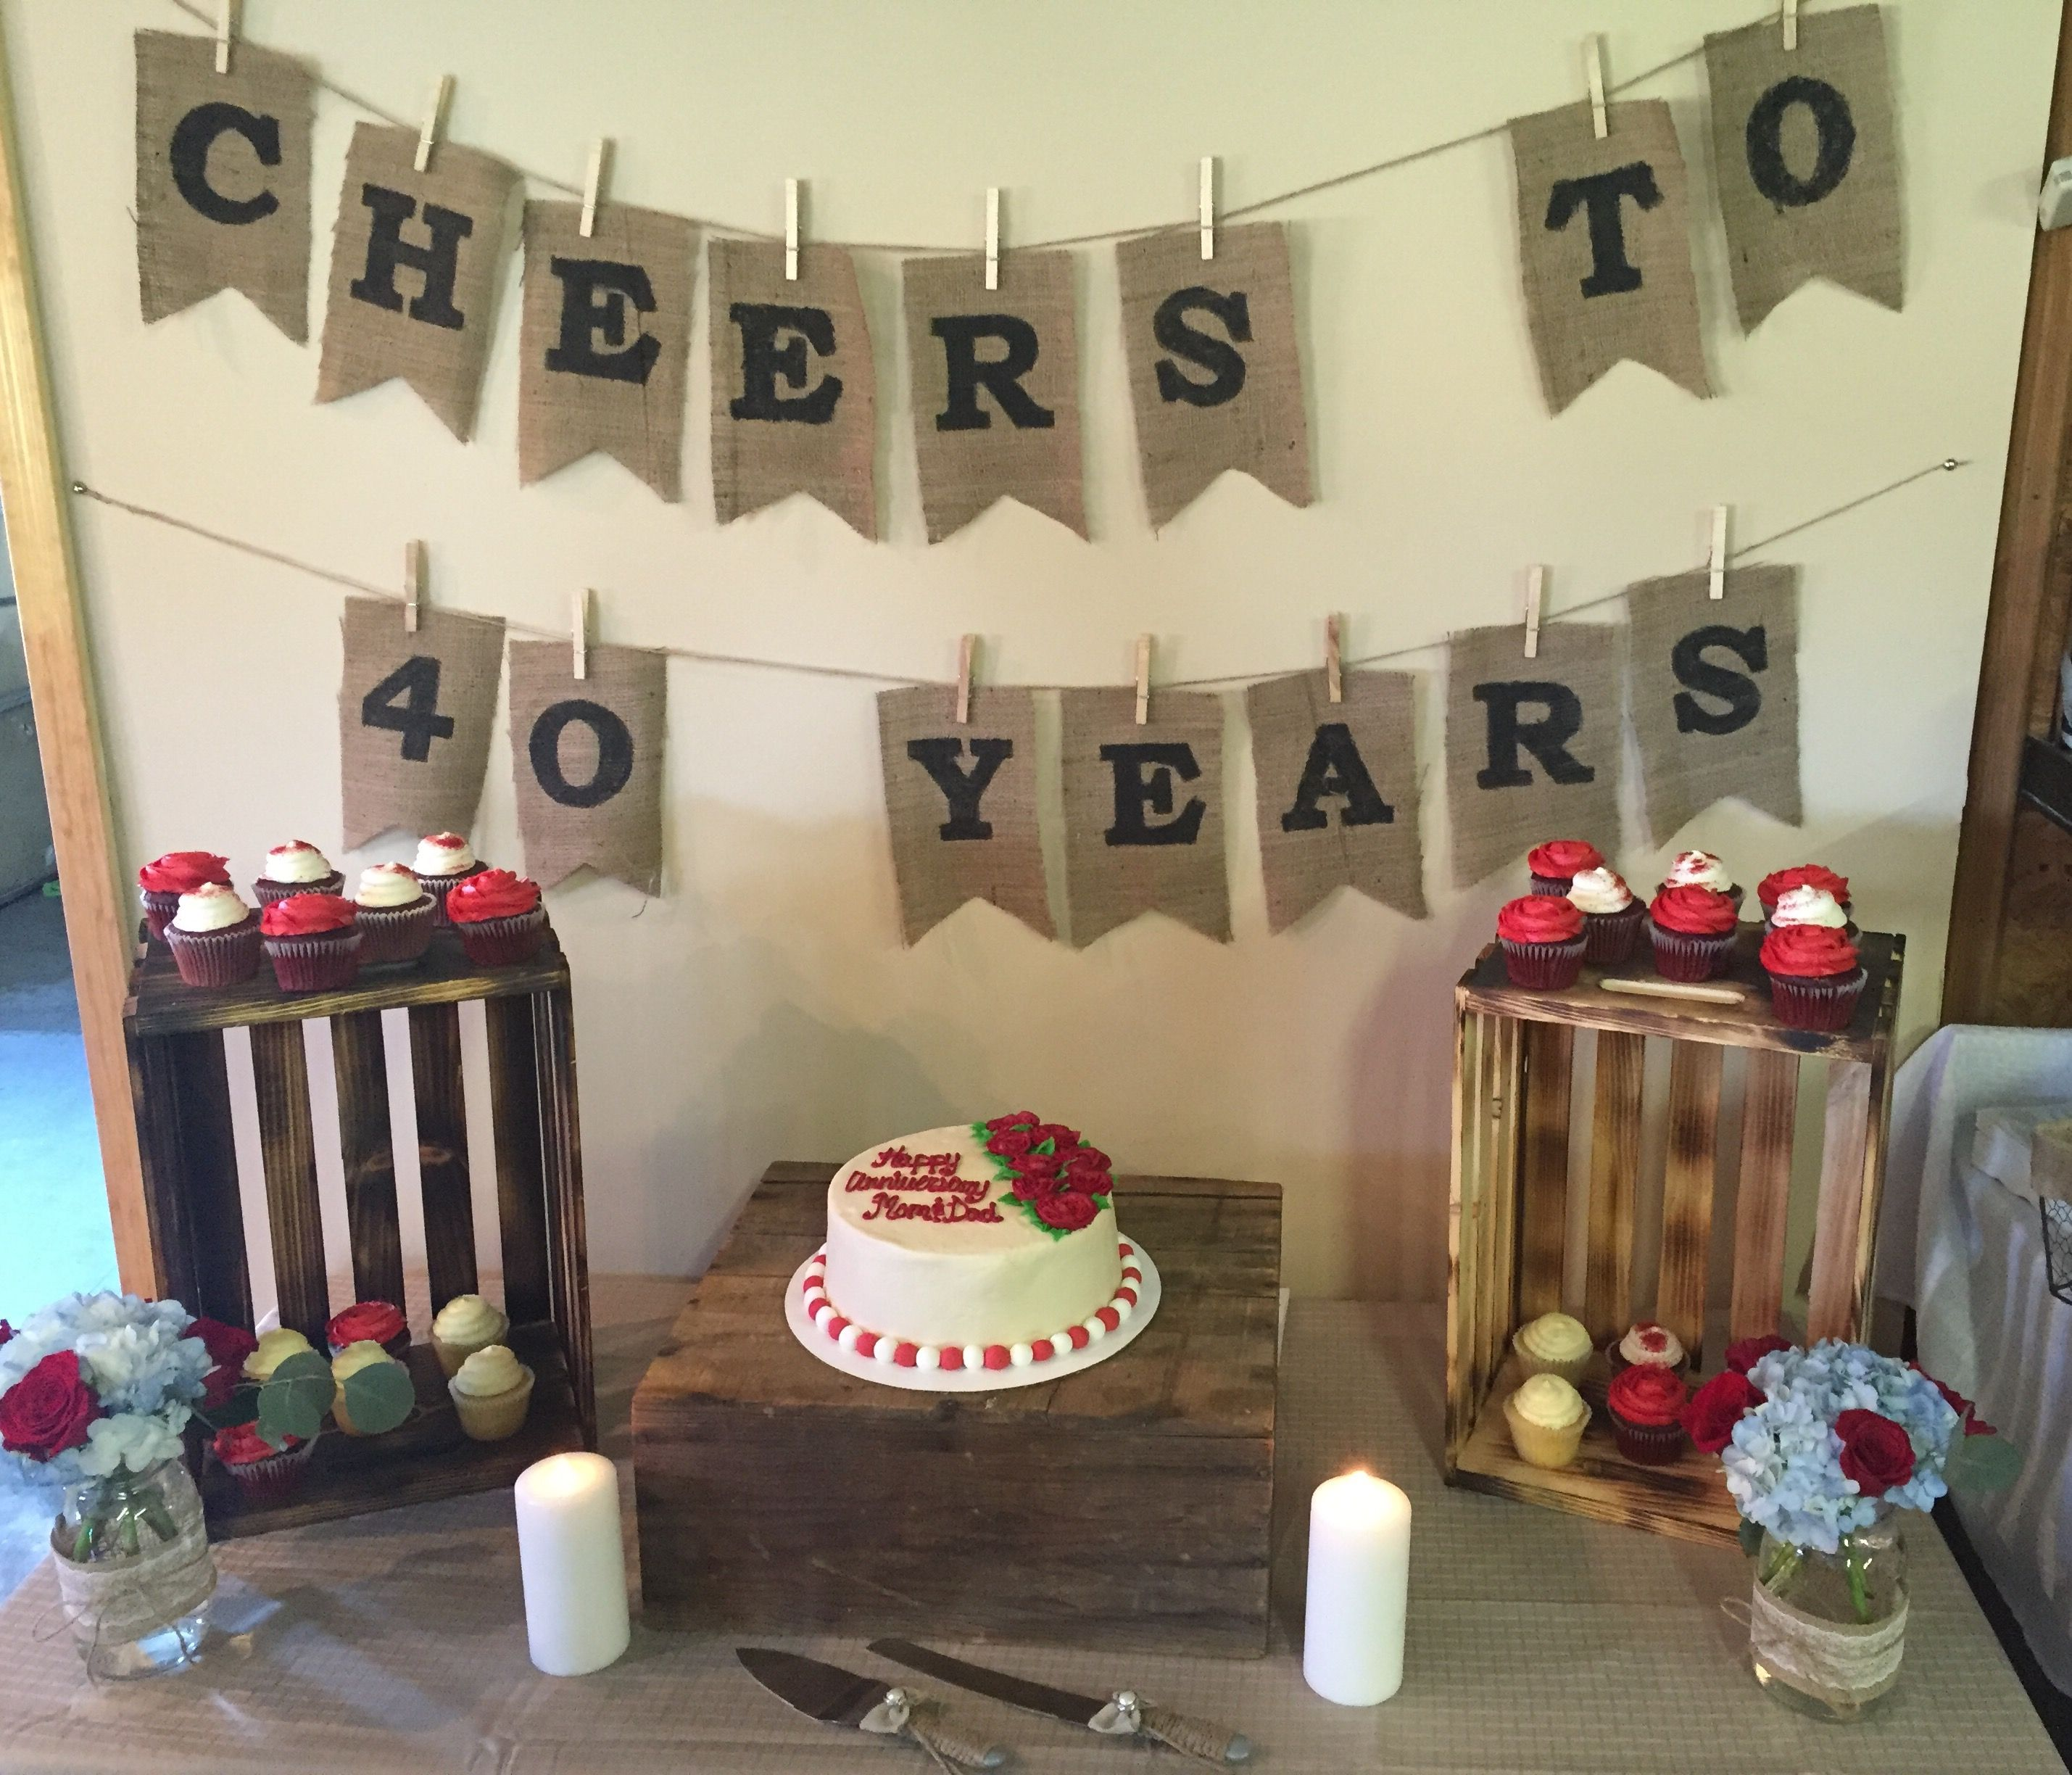 th wedding anniversary for mom and dad  parties  Pinterest